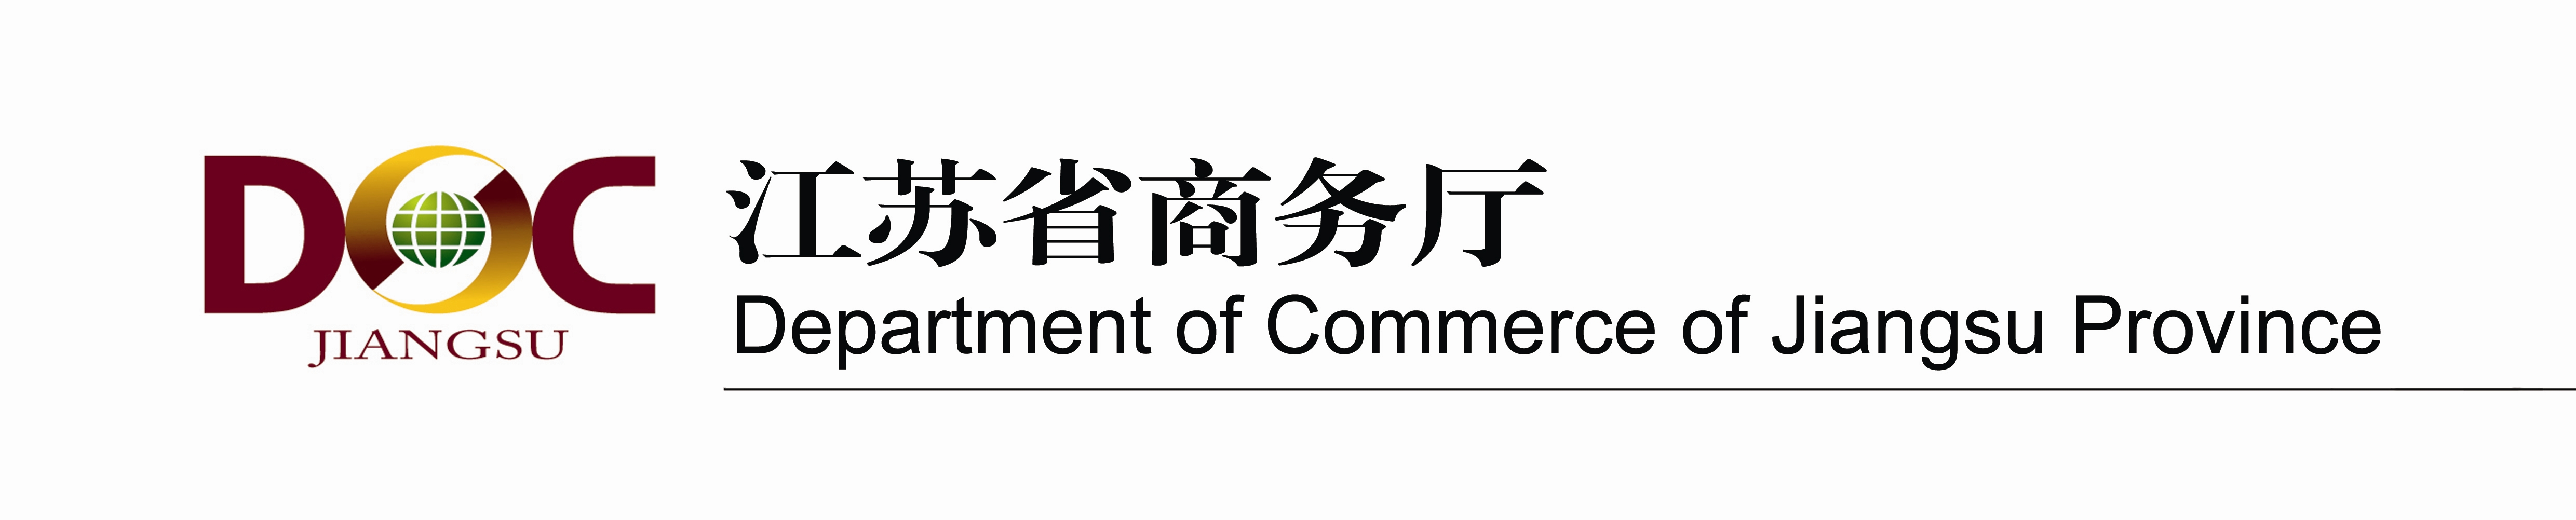 Jiangsu Province – Department of Commerce